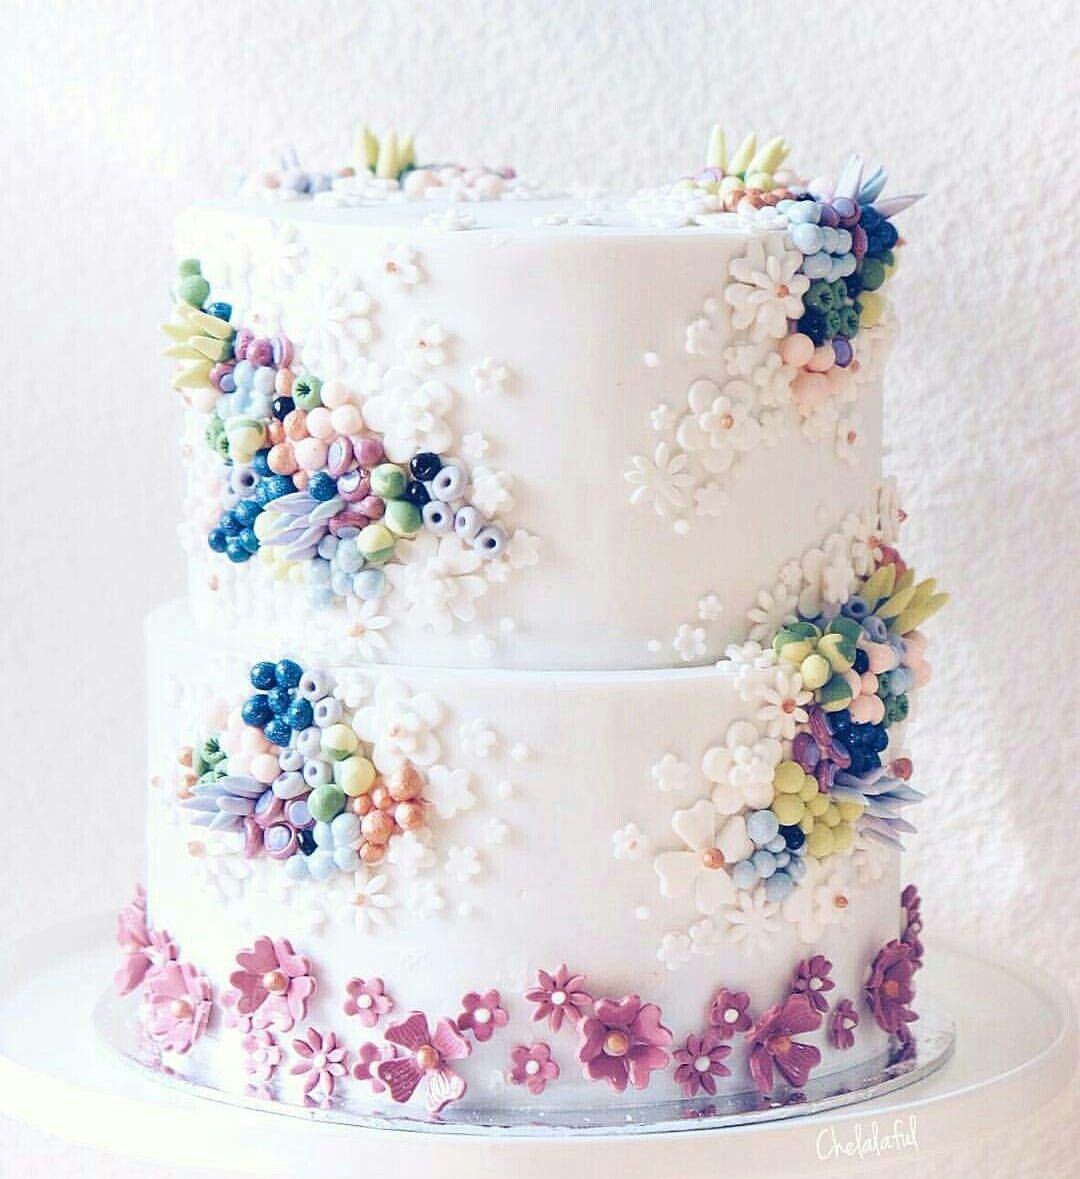 Pin By Nj Owens On Cakes Couture Cakes Cake Decorating Classes Cake